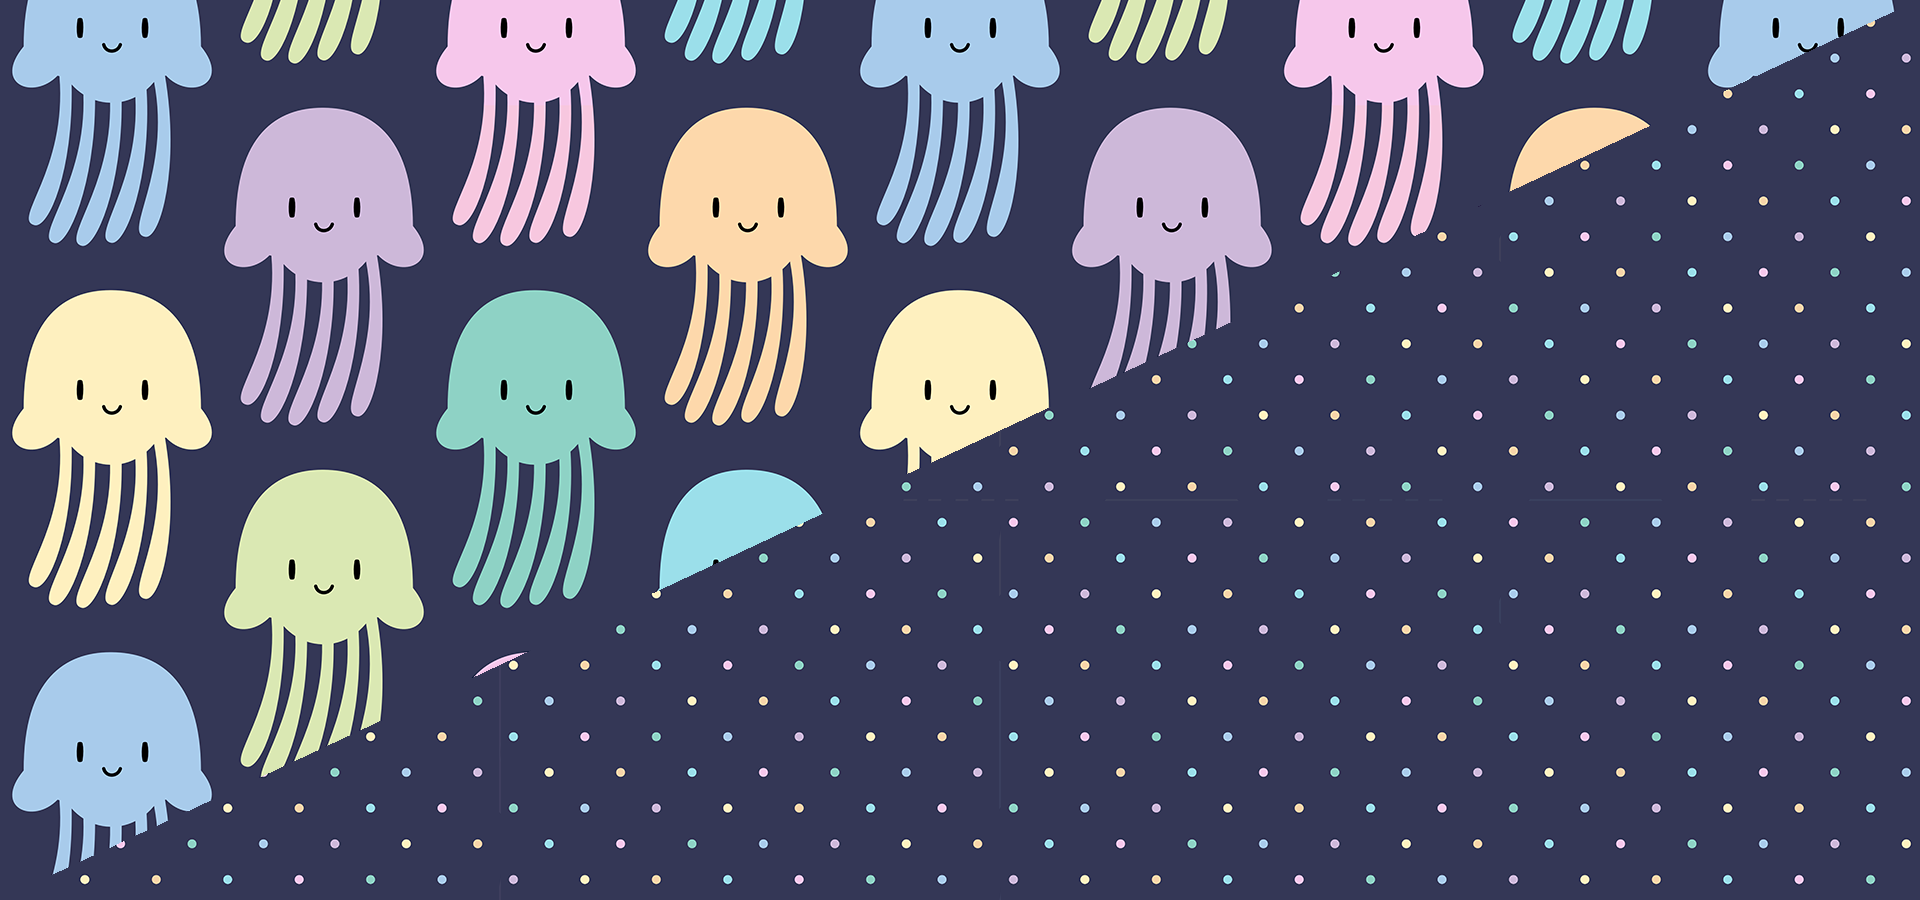 cute colorful jellyfishes pattern collection by petits pixels